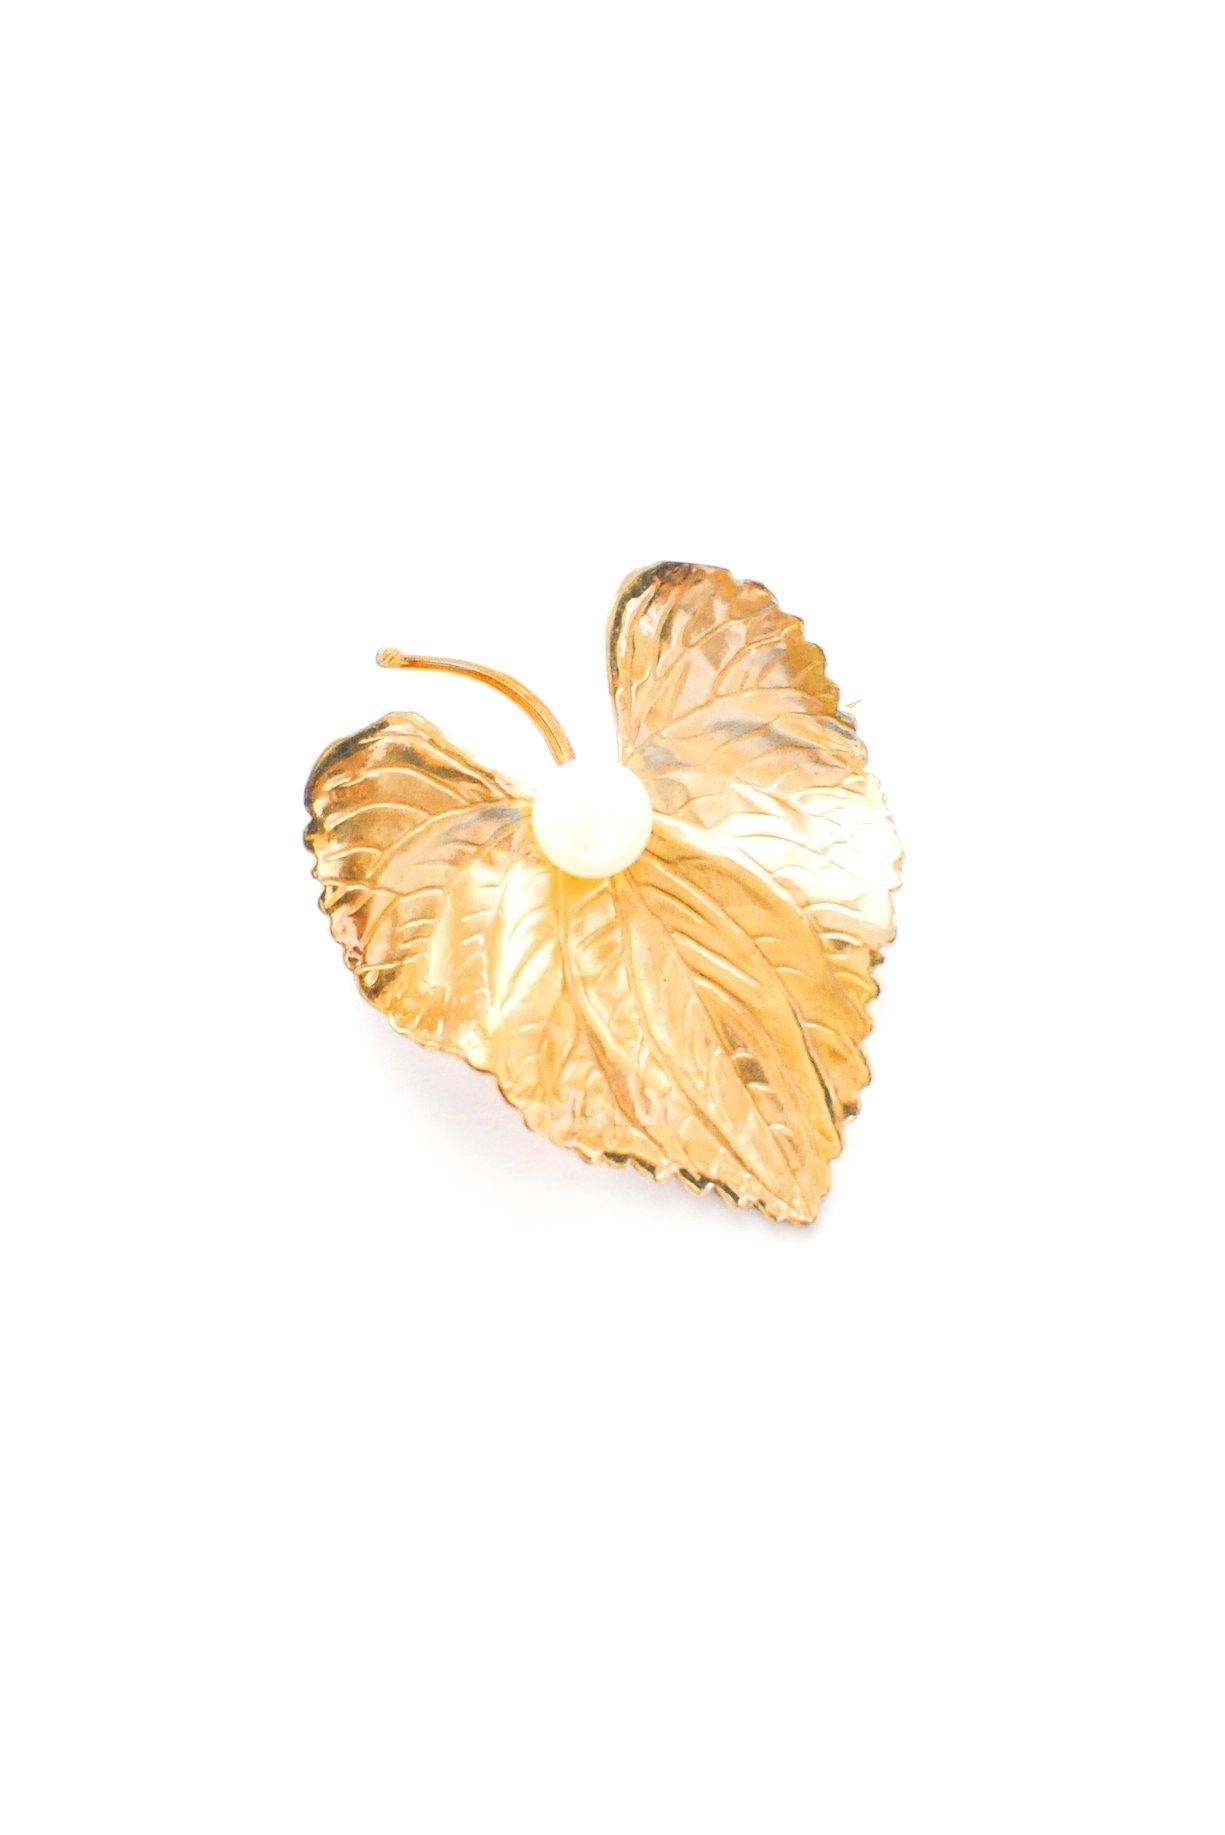 Pearl leaf brooch from Sweet & Spark.